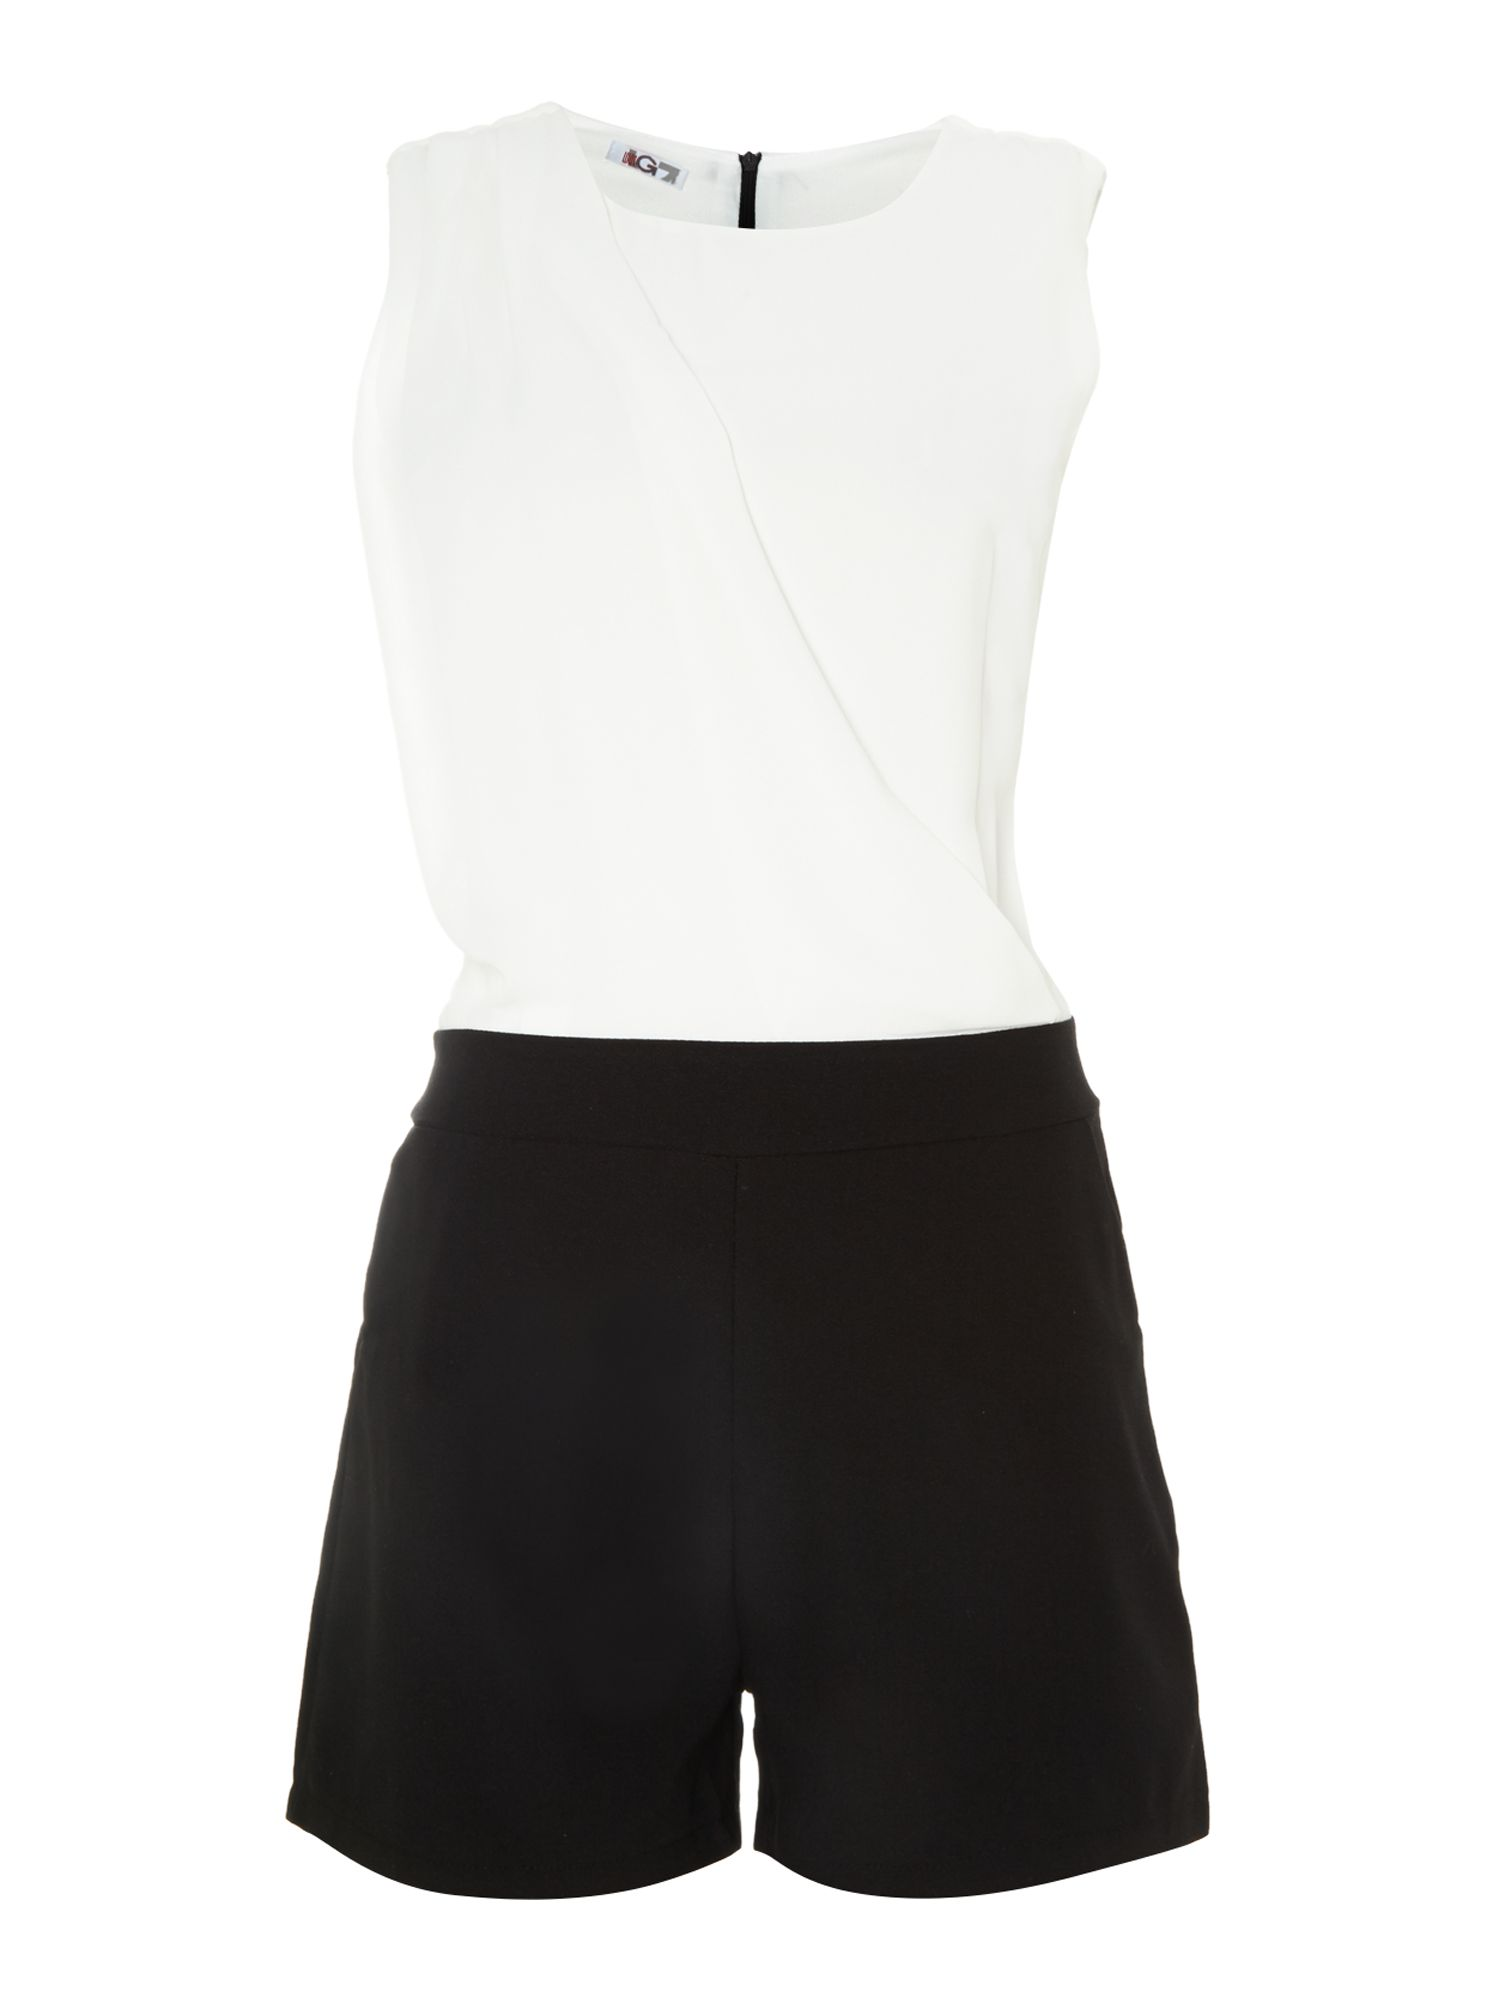 MONOCHROME CROSS FRONT PLAYSUIT